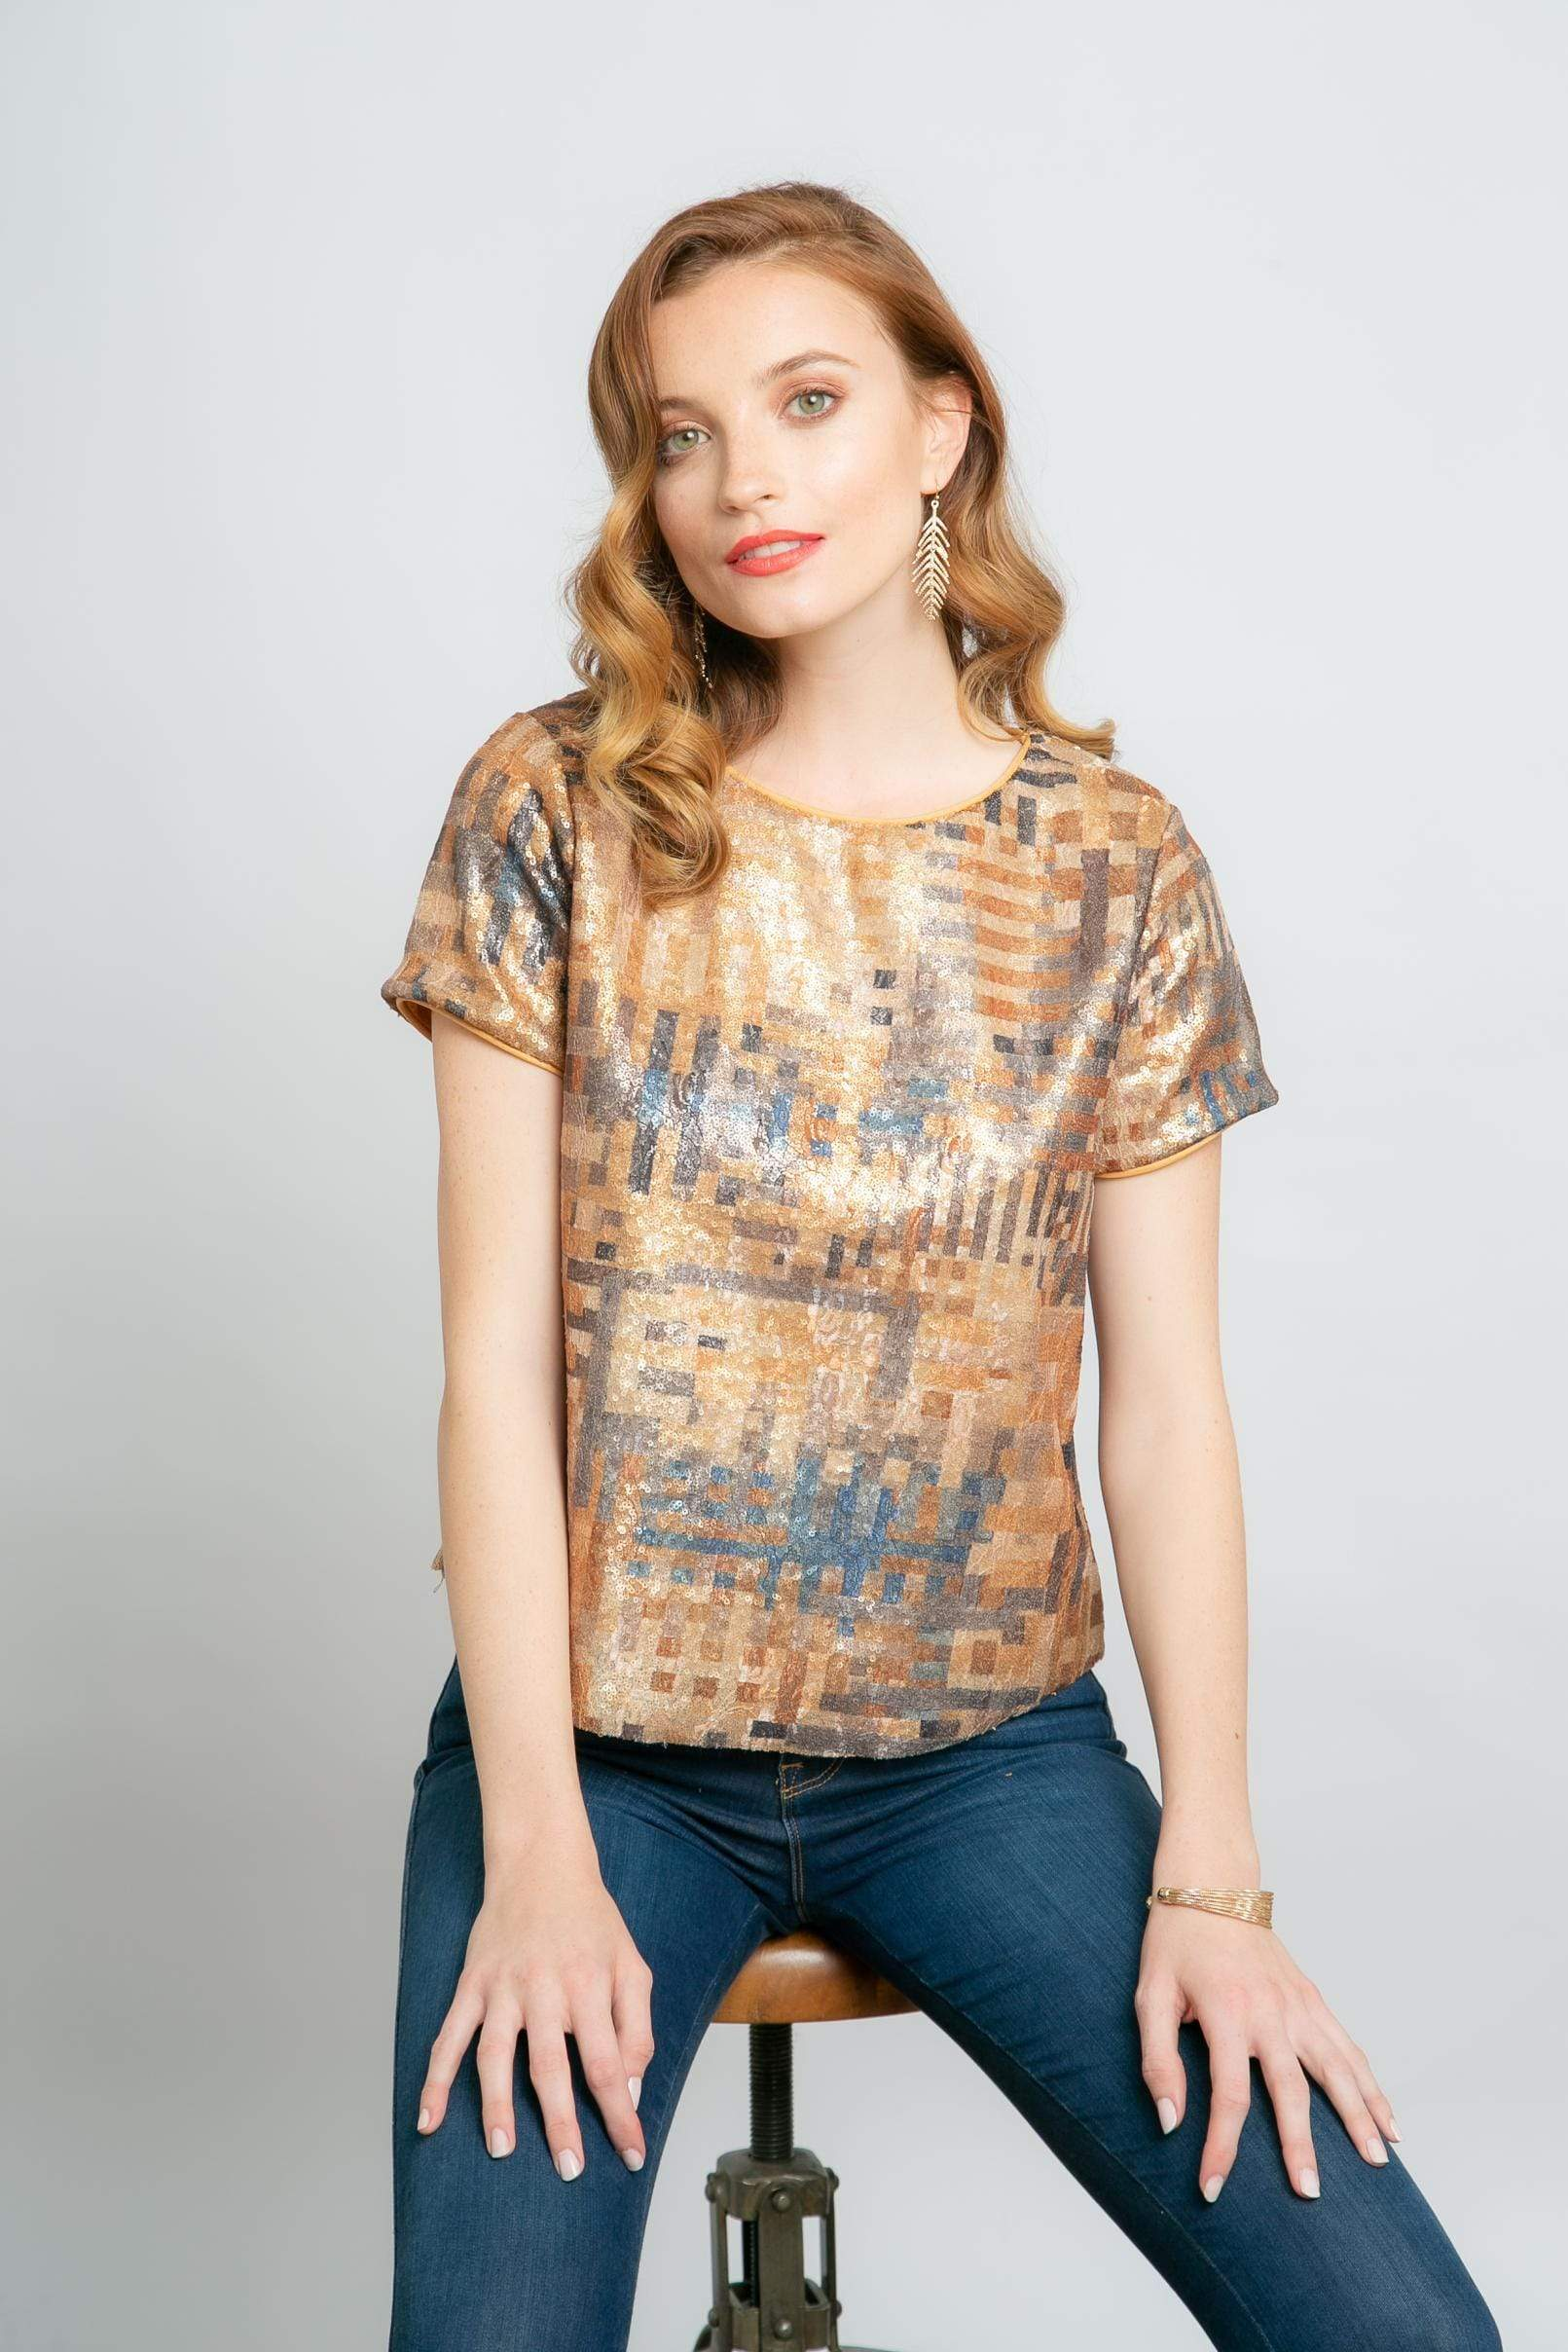 Eva Franco Top Rosita Top in Gold Dust